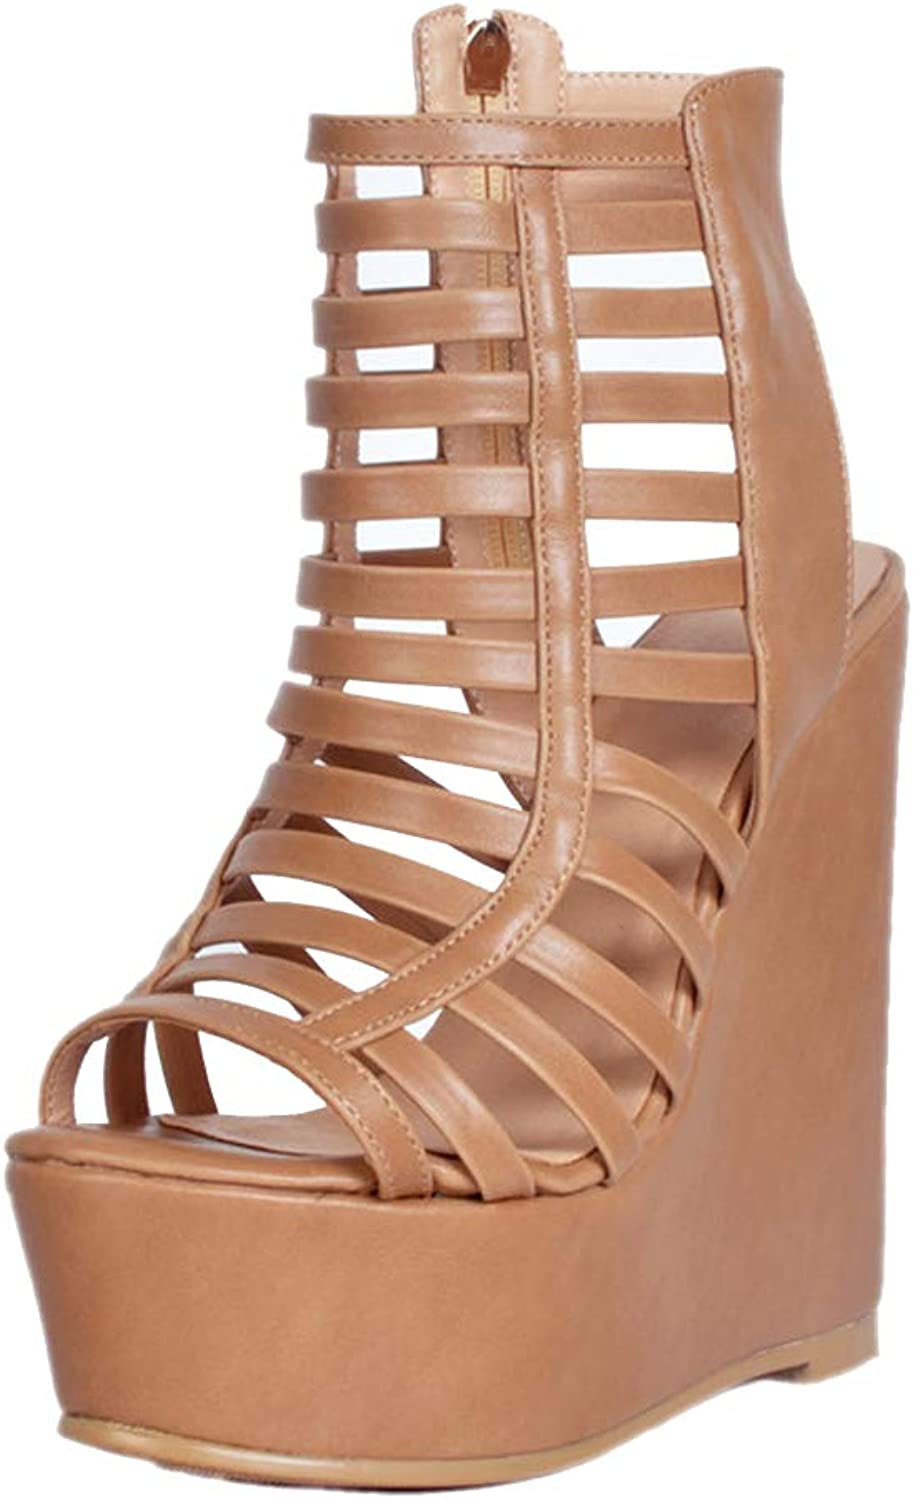 CASSOCK Ladies Handmade Wadge Heel Sandals Cut-Out Sexy School Party Prom Summer Fashion shoes